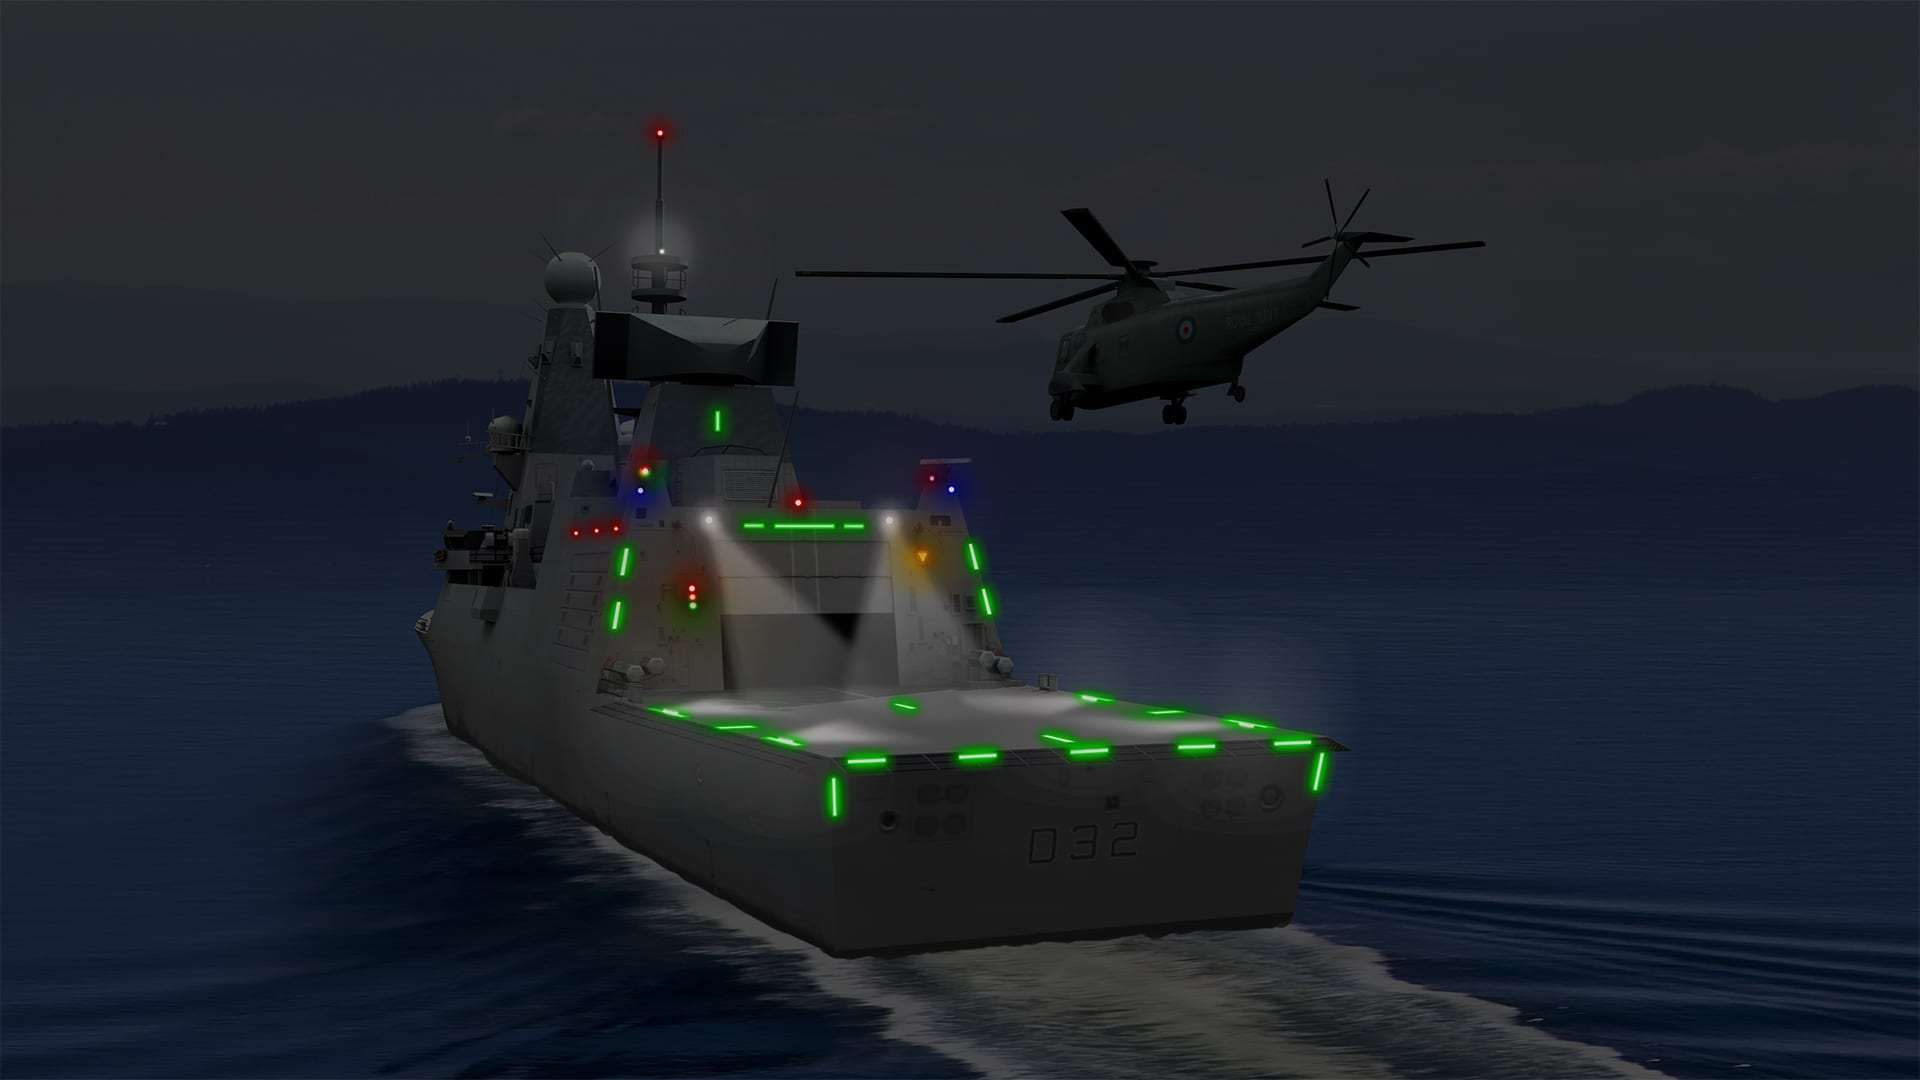 Interactive ship showing helicoptor landing using Aeronautical & General Instruments (AGI) Ltd Visual Landing Aid Lights